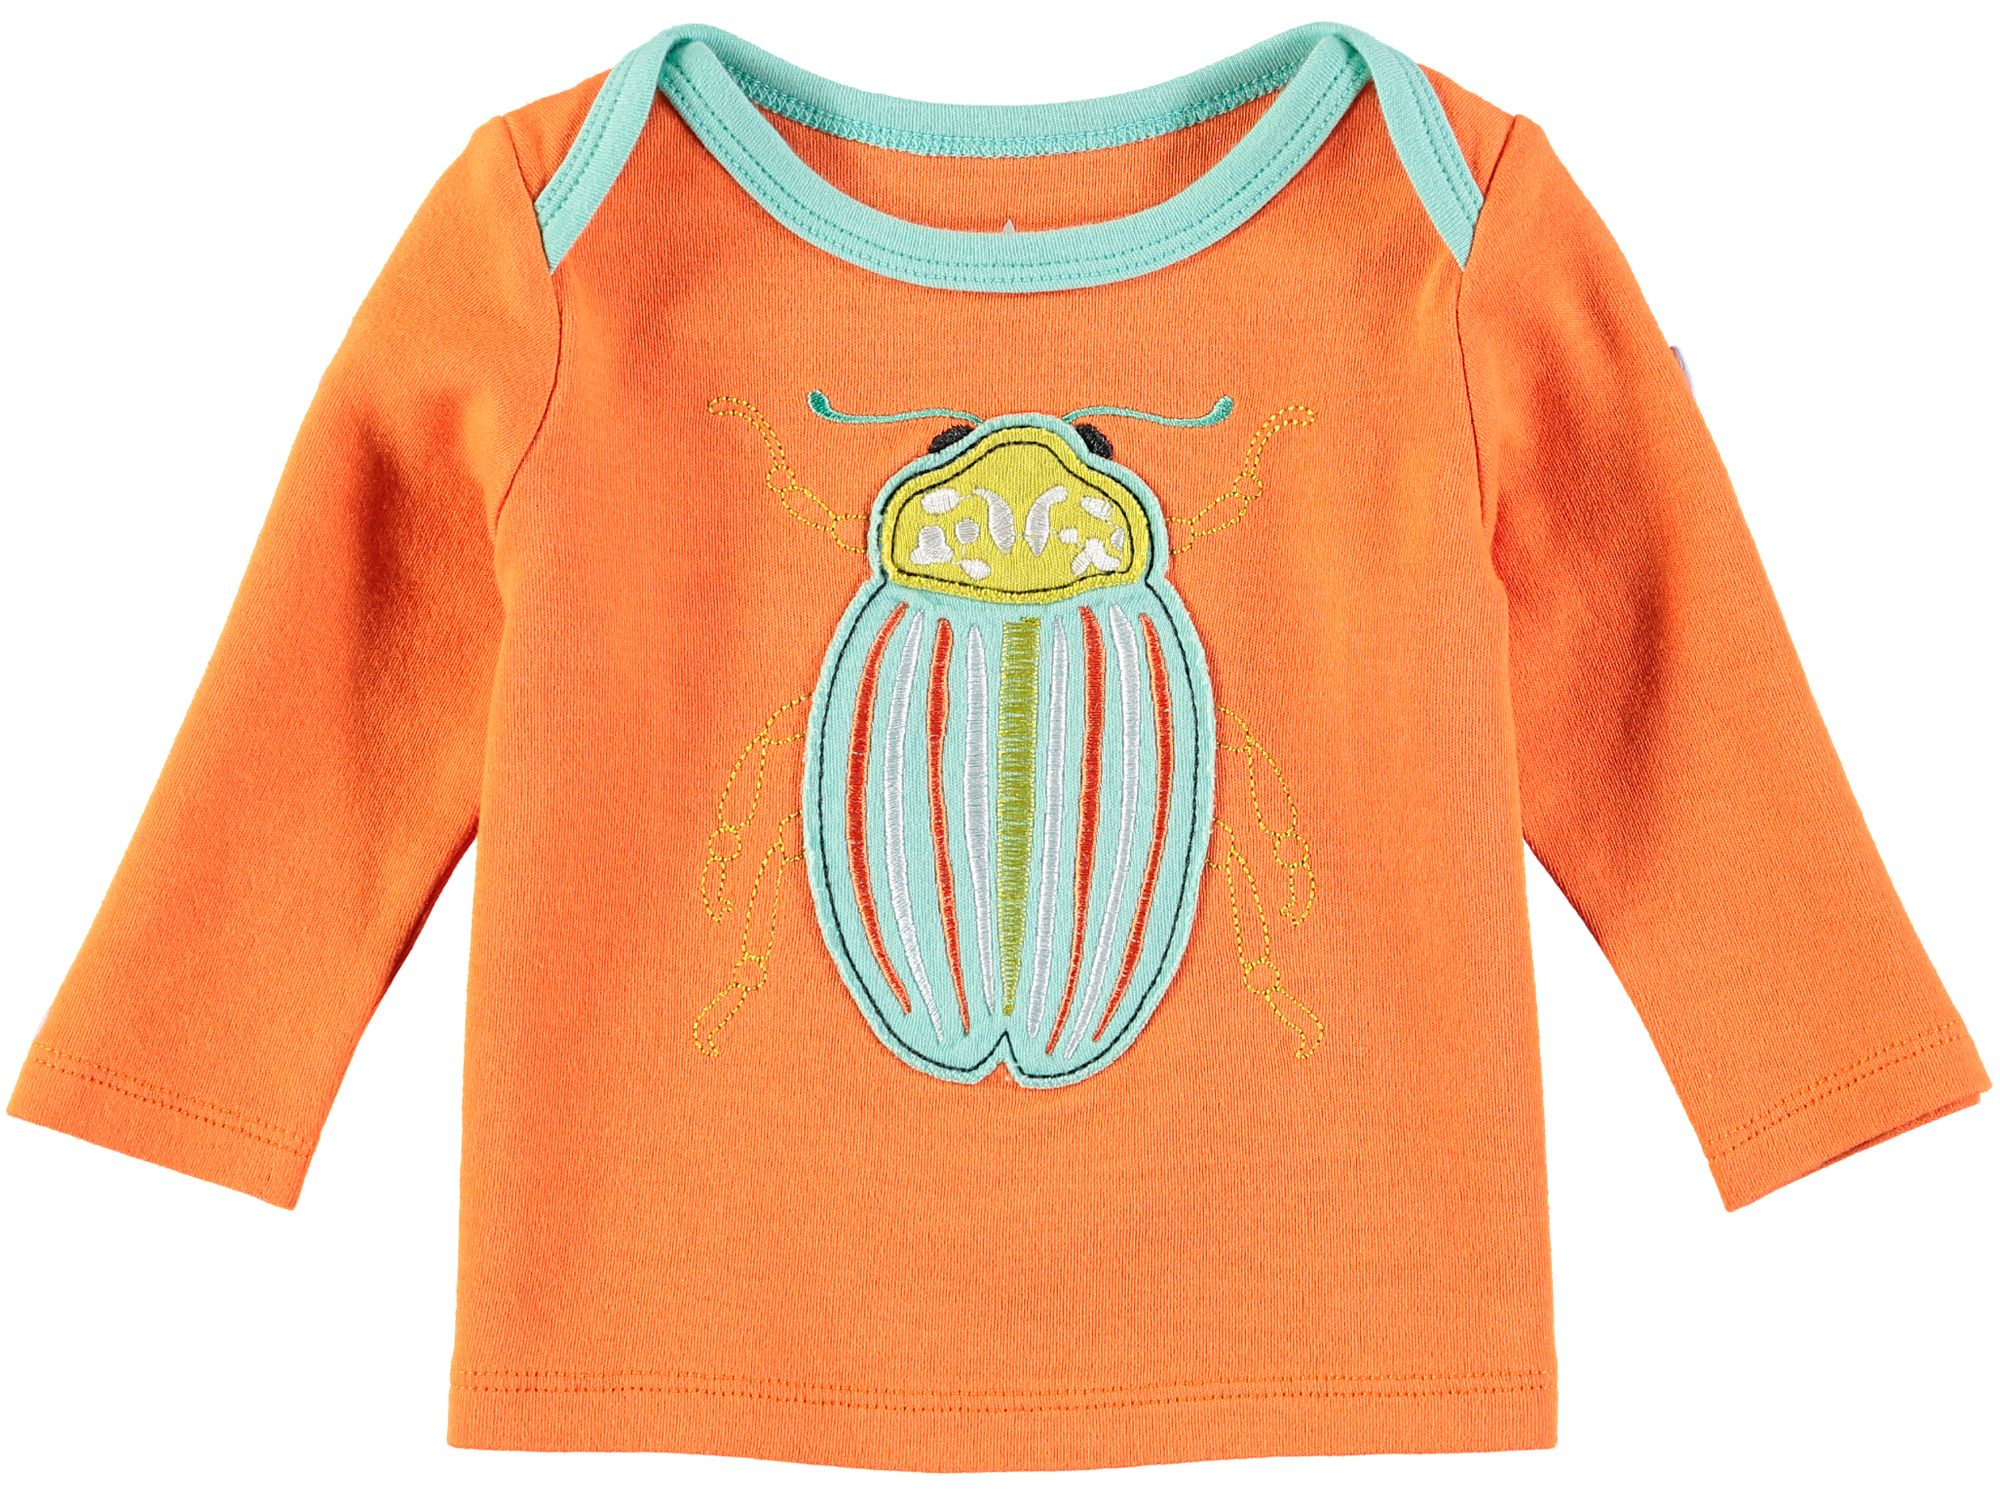 Rockin' Baby Rockin' Baby Boys Orange Bug T-Shirt, Orange